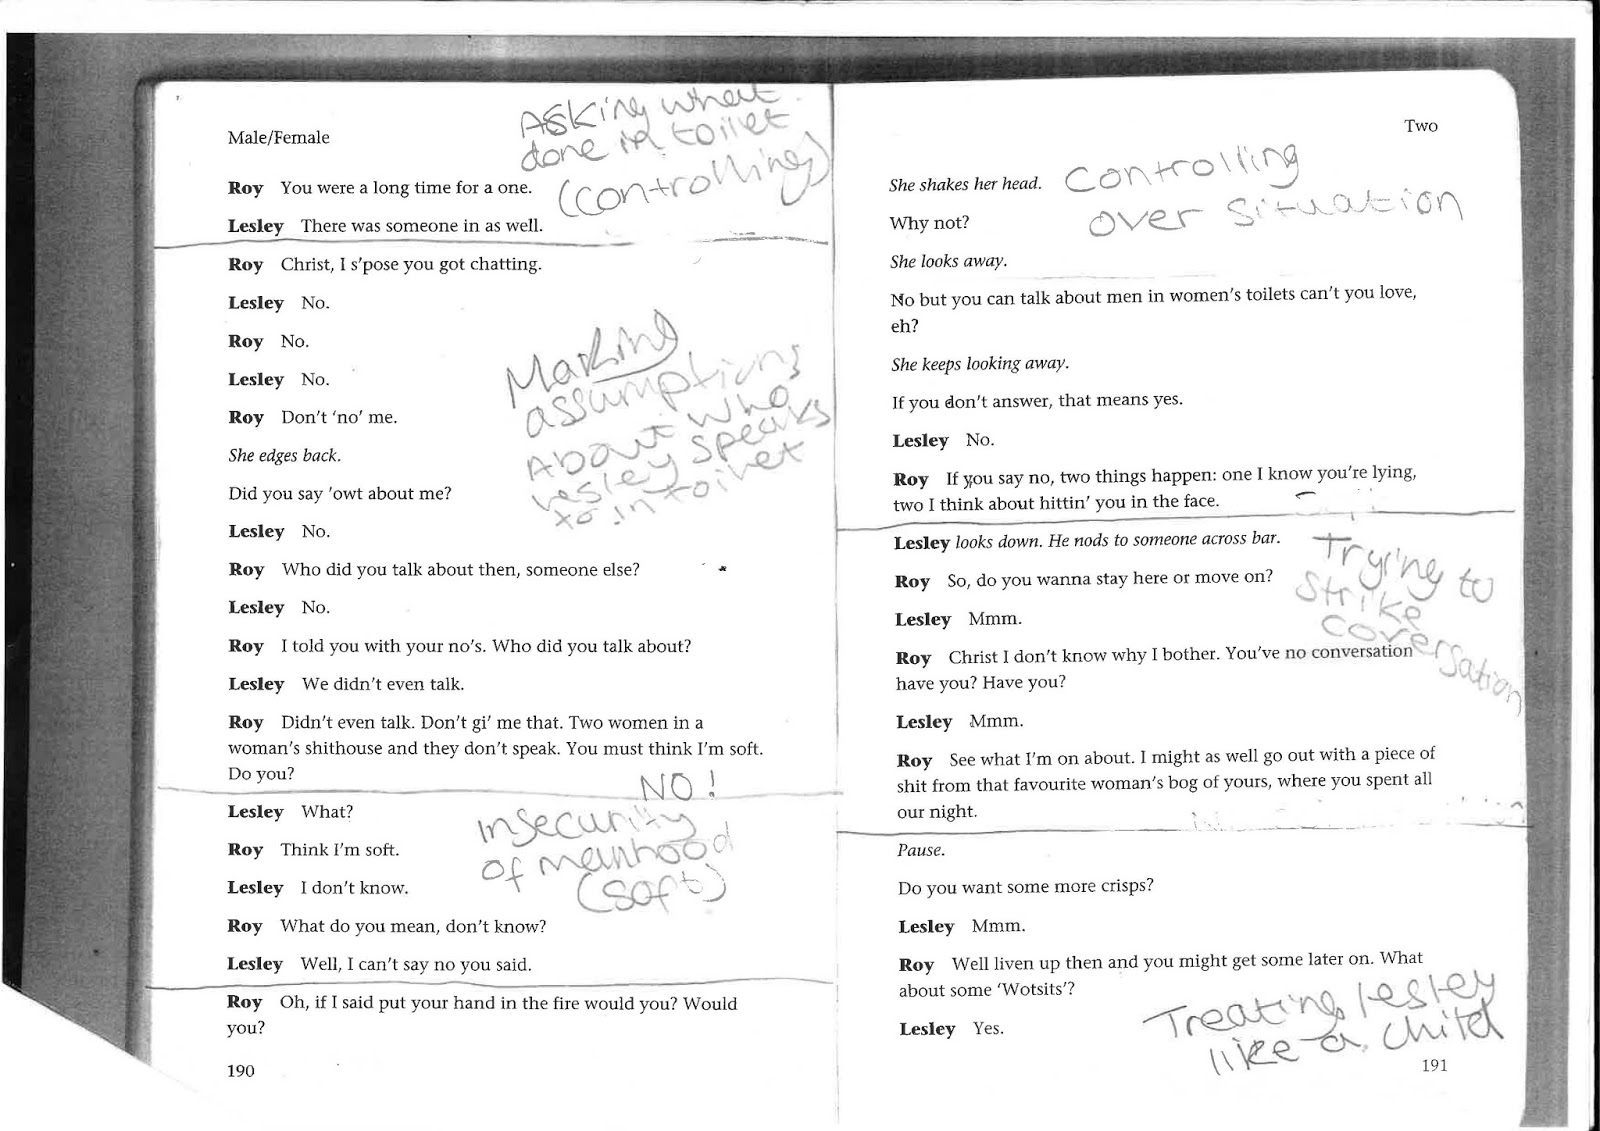 units and objectives lenrick greaves btec drama these are the images of my unit and objective annotations on my script i have completed the majority of it i just need to finish the last page of my